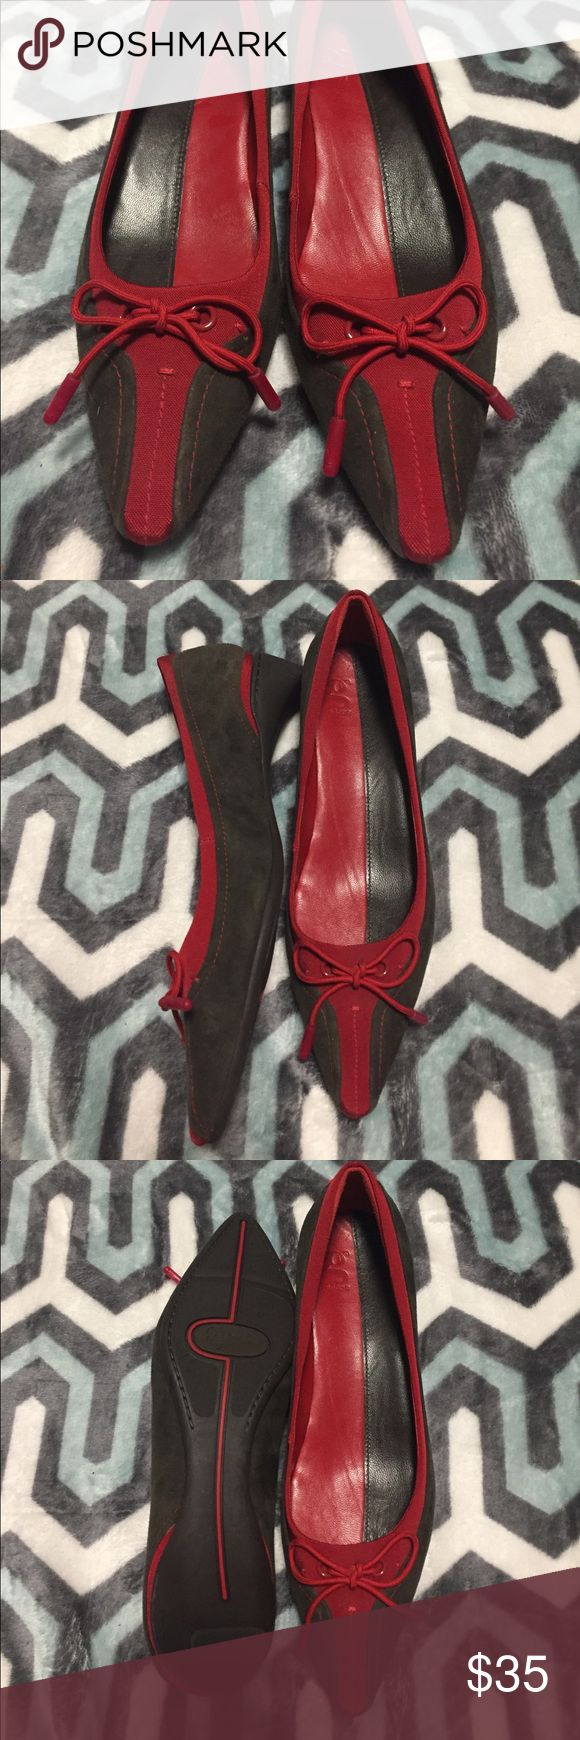 "❤️NWOT ❤️Cole Haan G Series shoes One of a kind and very rare. Never worn Cole Haan red and brown 1"" pumps with unique heel Cole Haan Shoes"